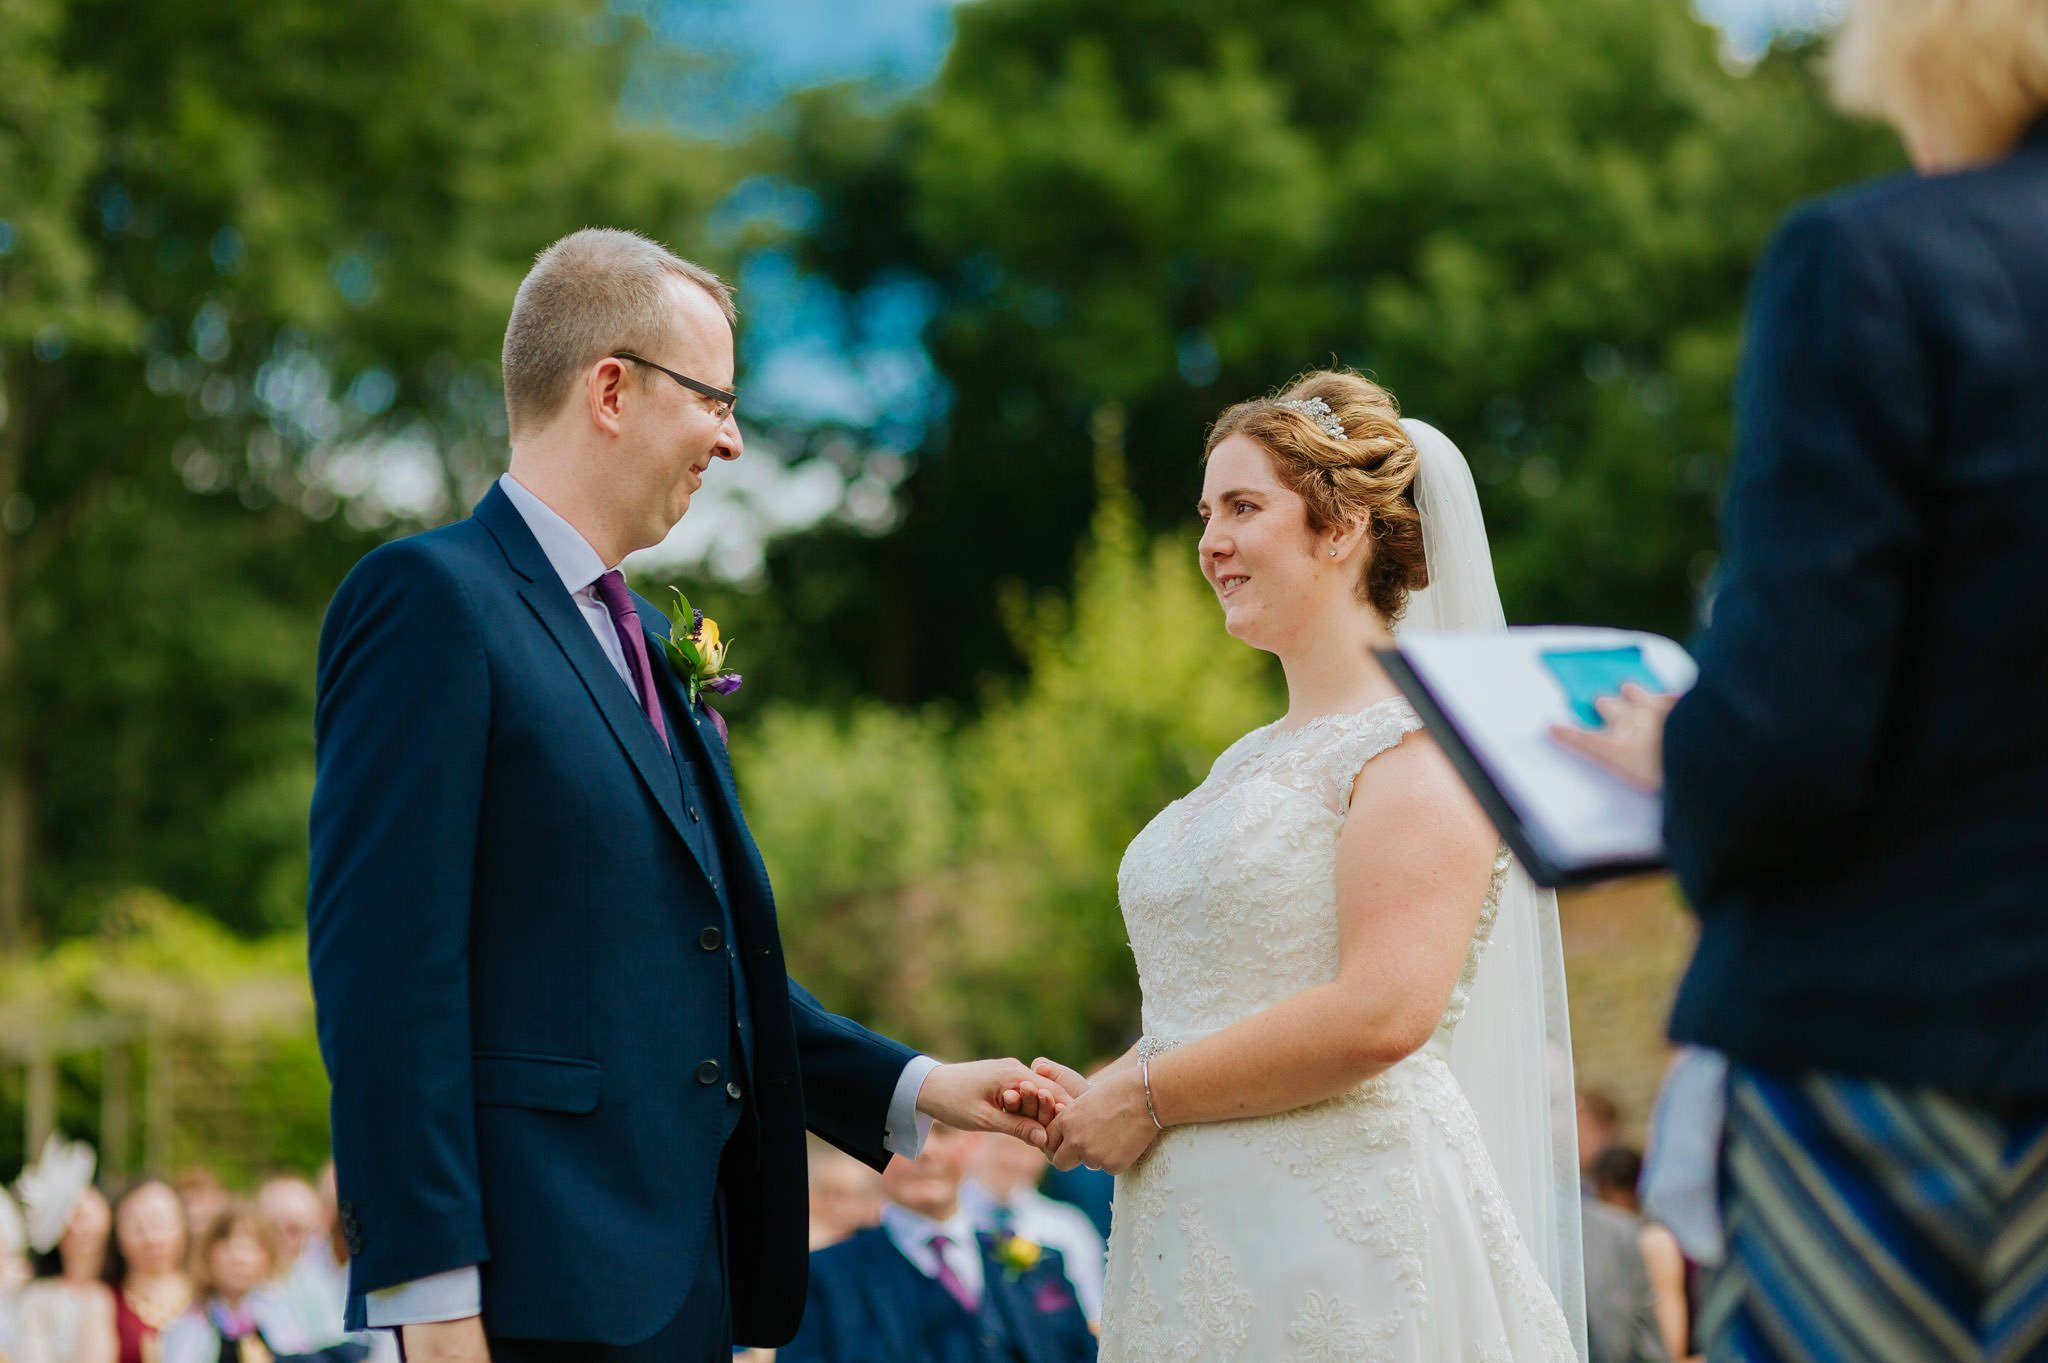 Wedding photography at Homme House in Herefordshire, West Midlands 29